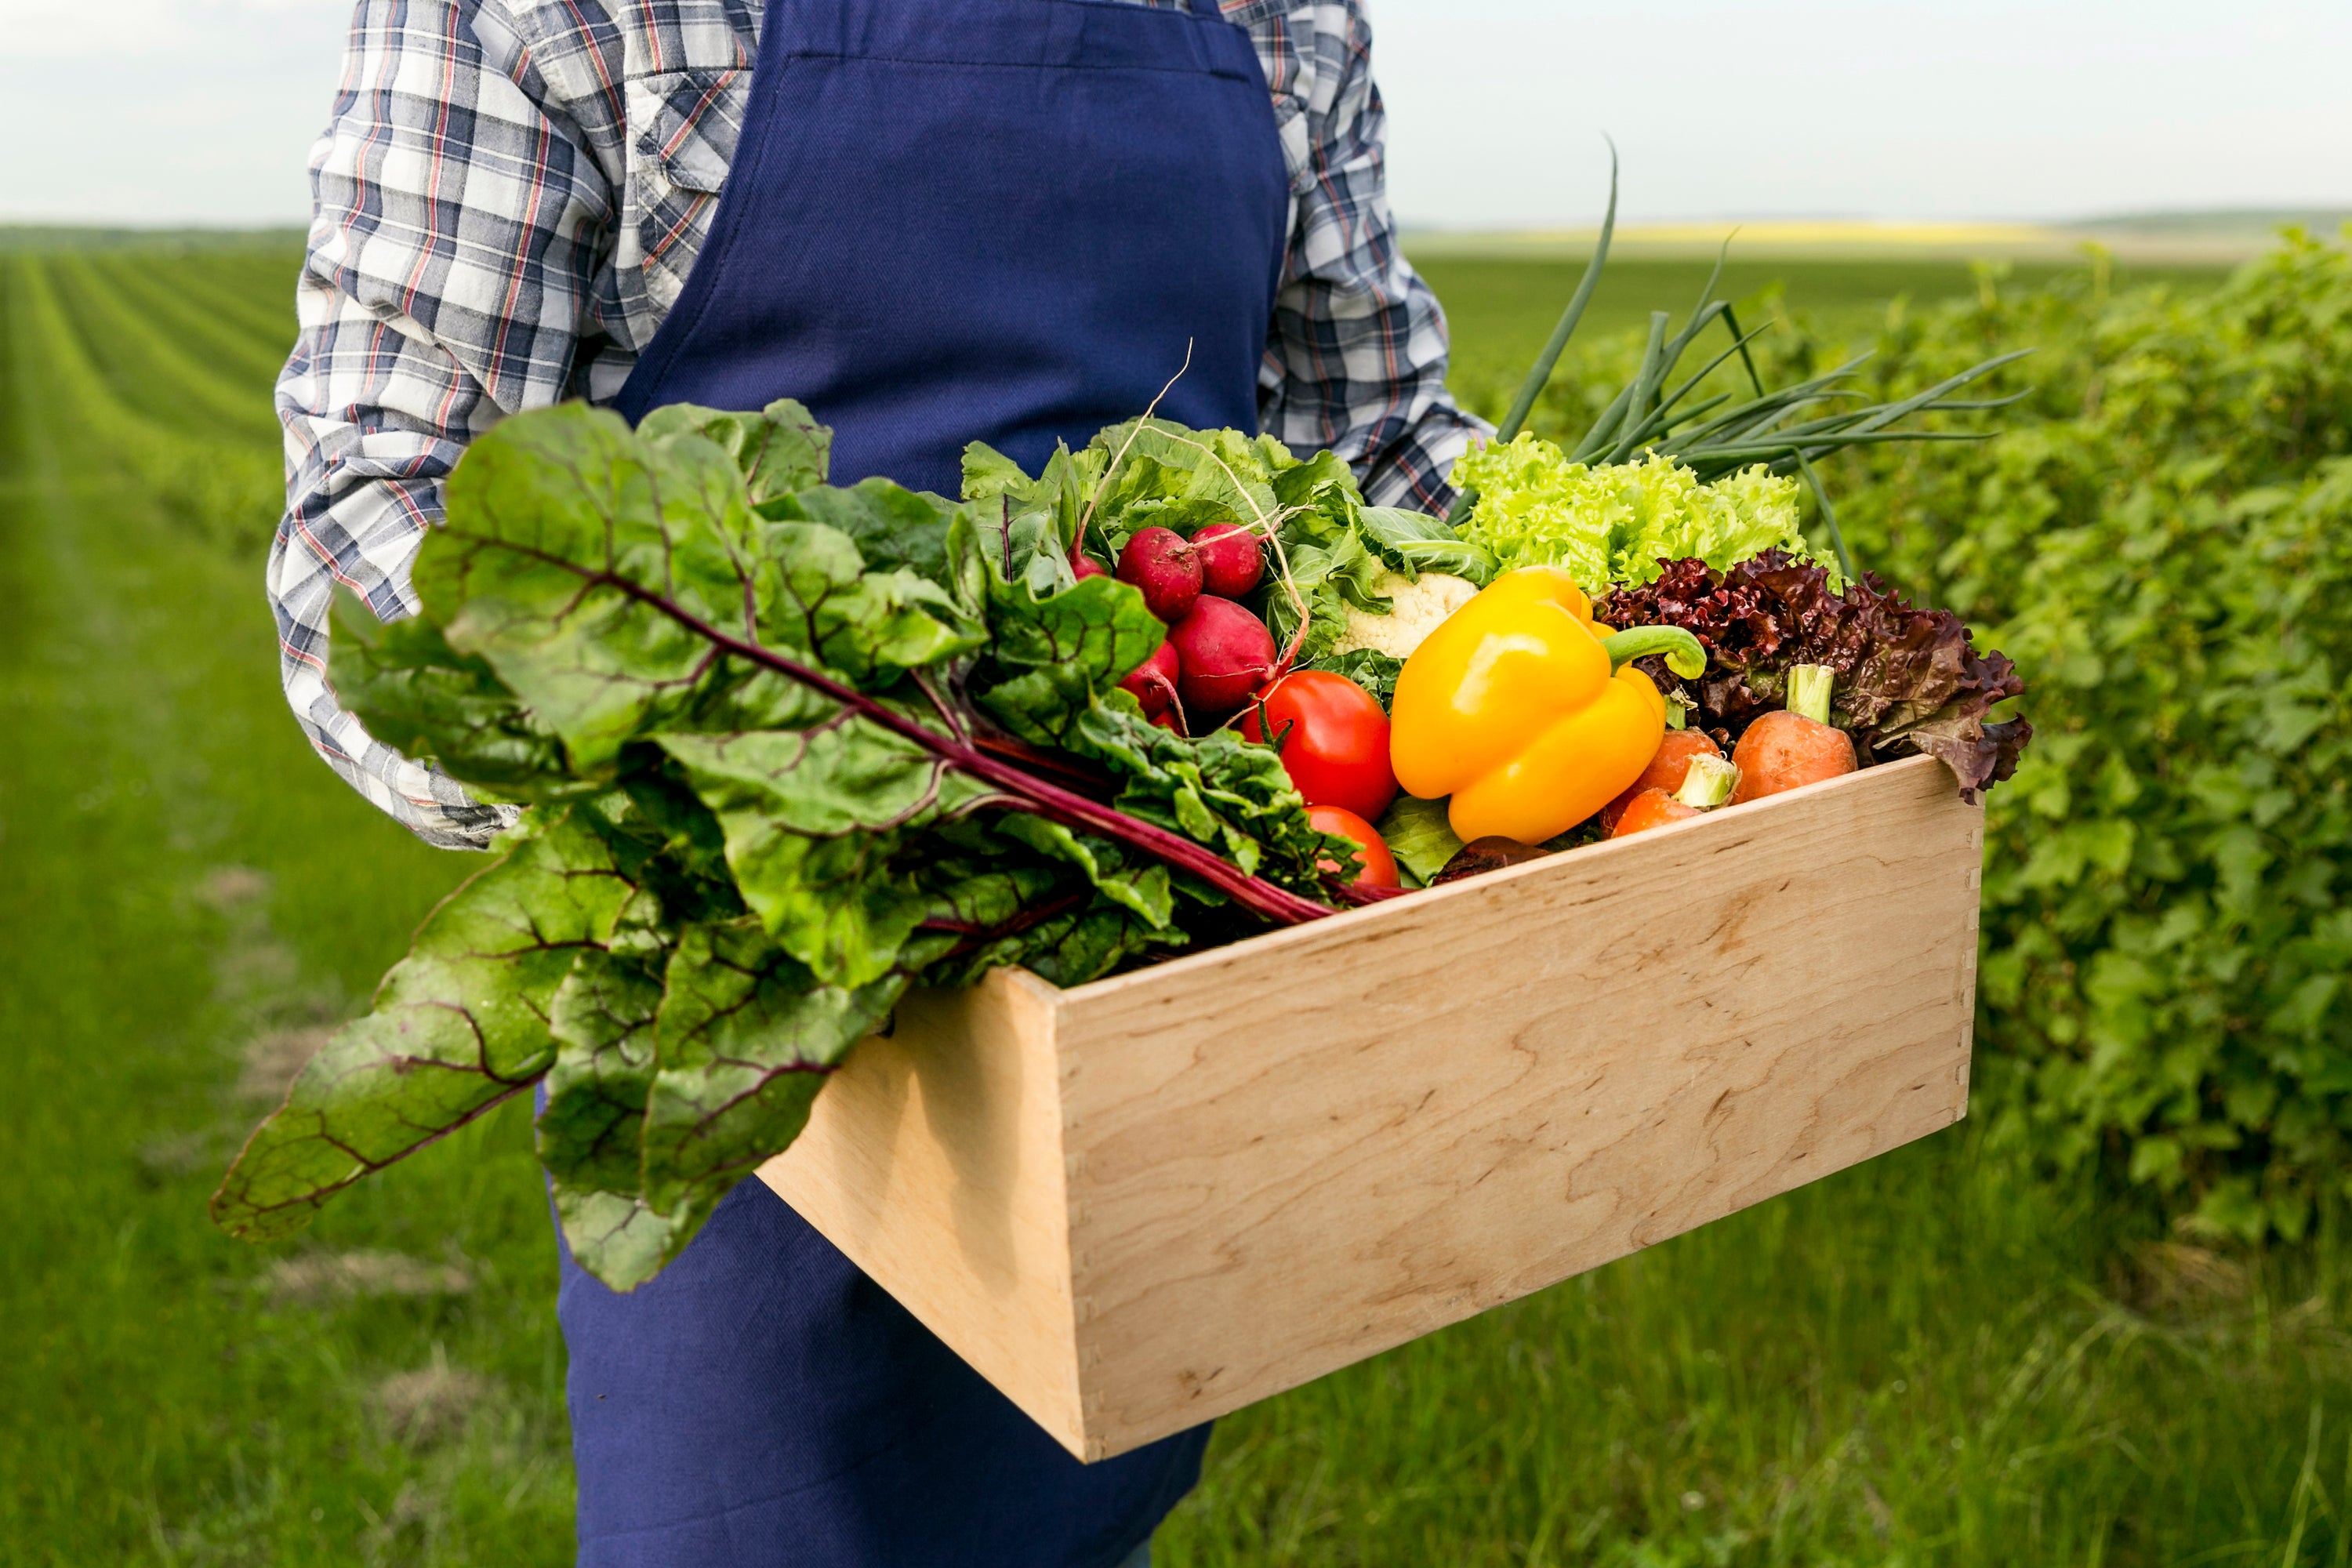 Vegetables in Box, What Produce is in Season in Autumn?